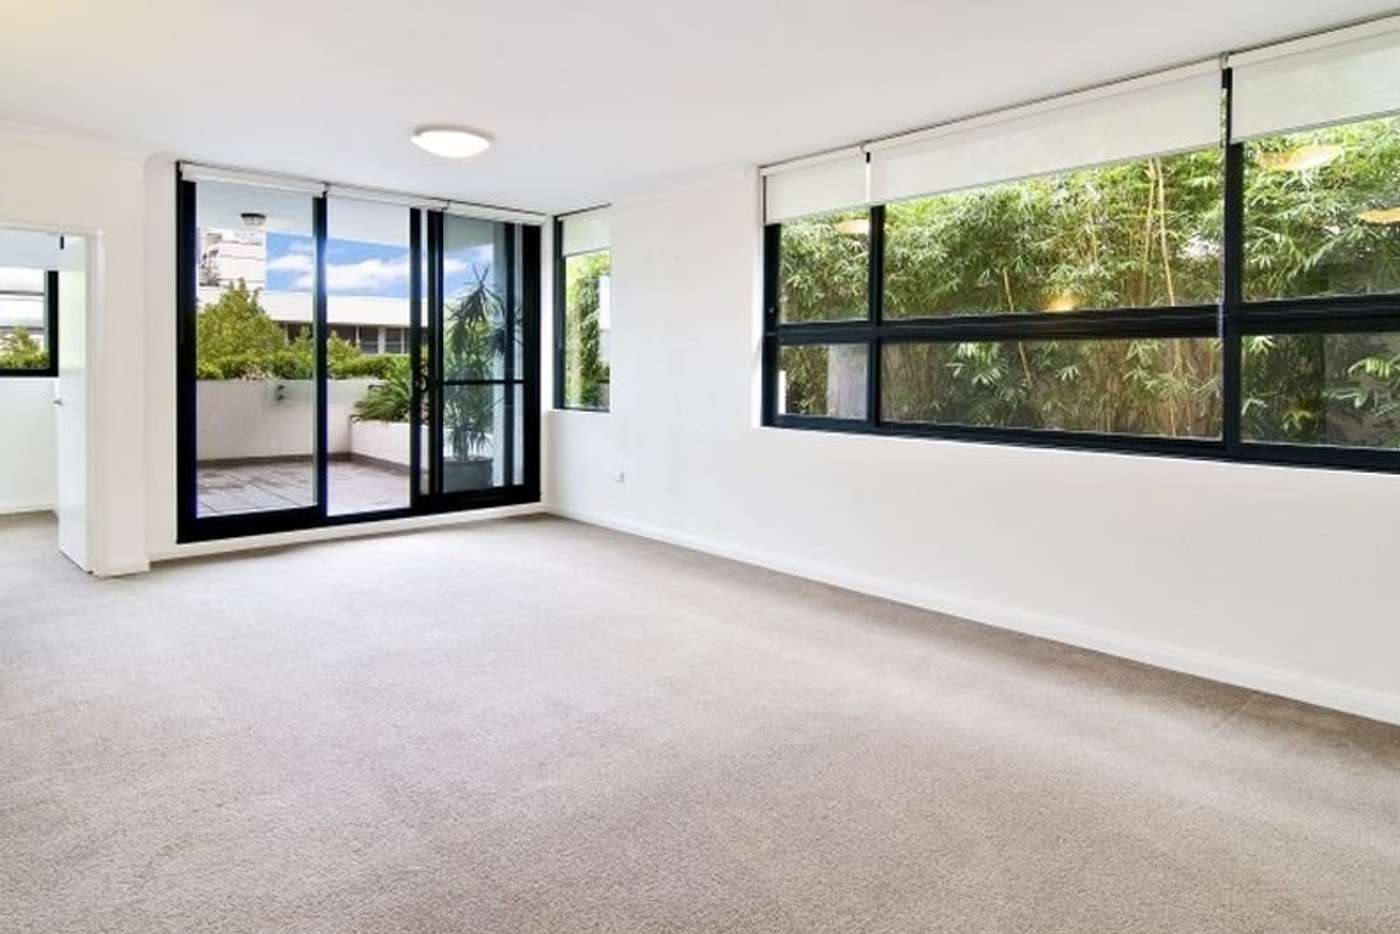 Main view of Homely apartment listing, 434/38-46 Albany Street, St Leonards NSW 2065